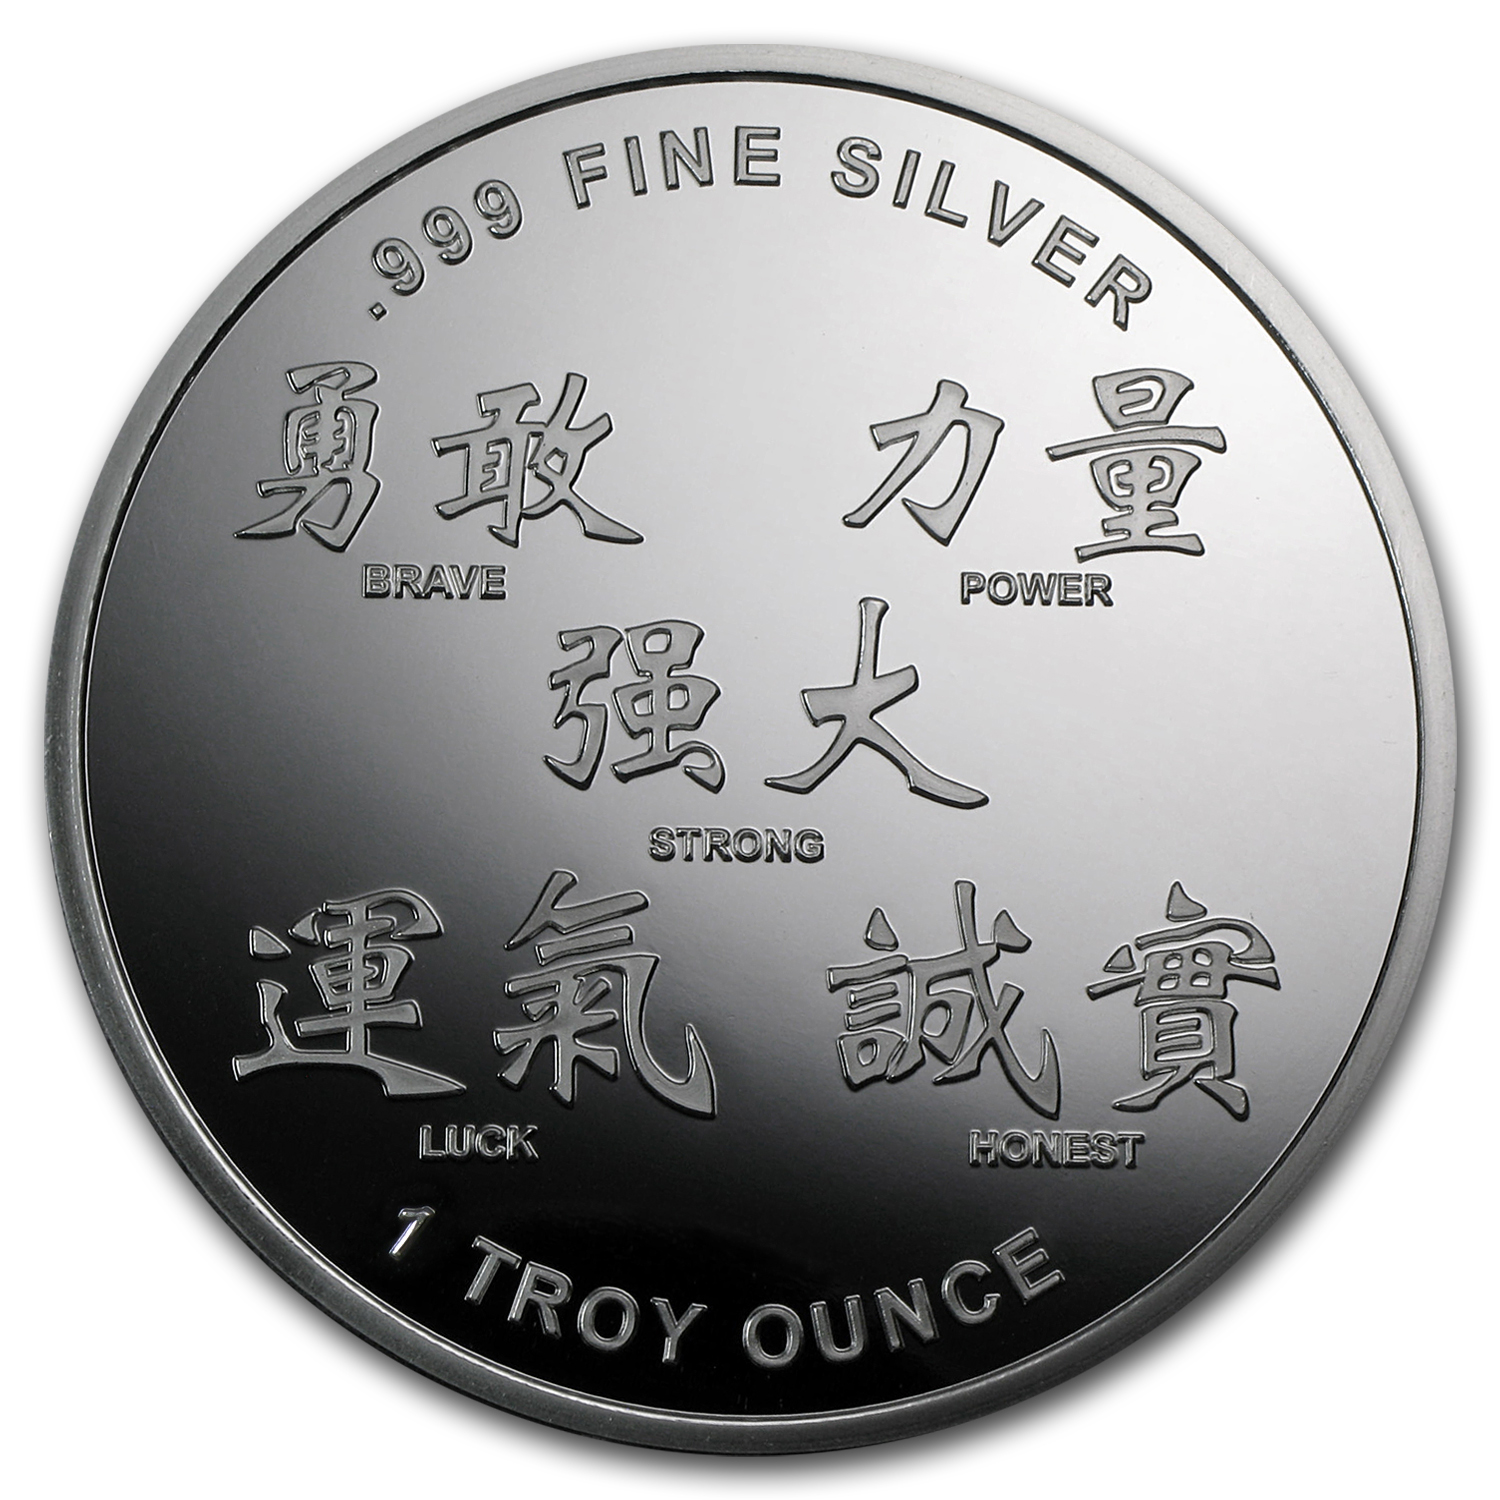 1 oz Silver Rounds - APMEX (2012 Year of the Dragon)